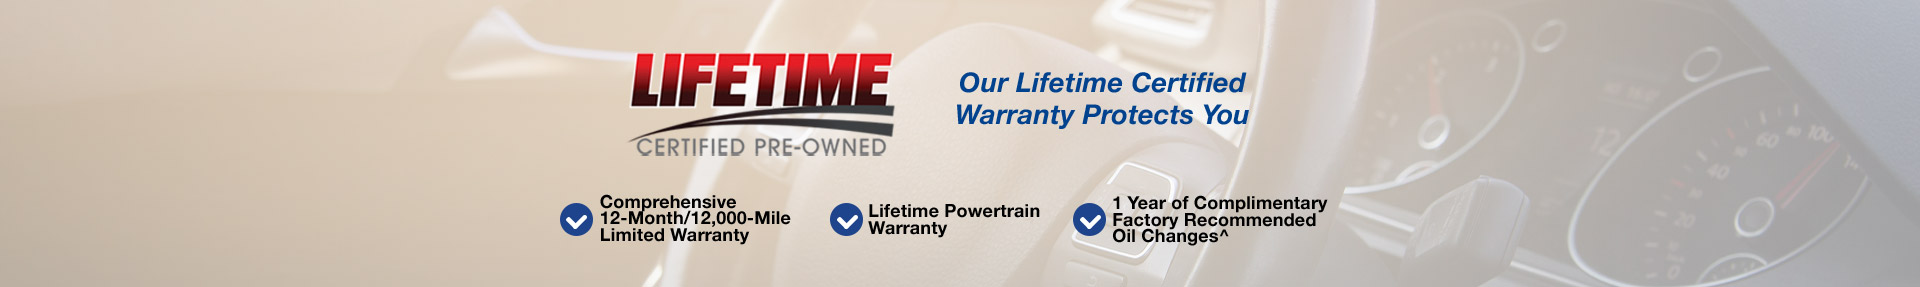 Our Lifetime Certified Warranty Protects You!